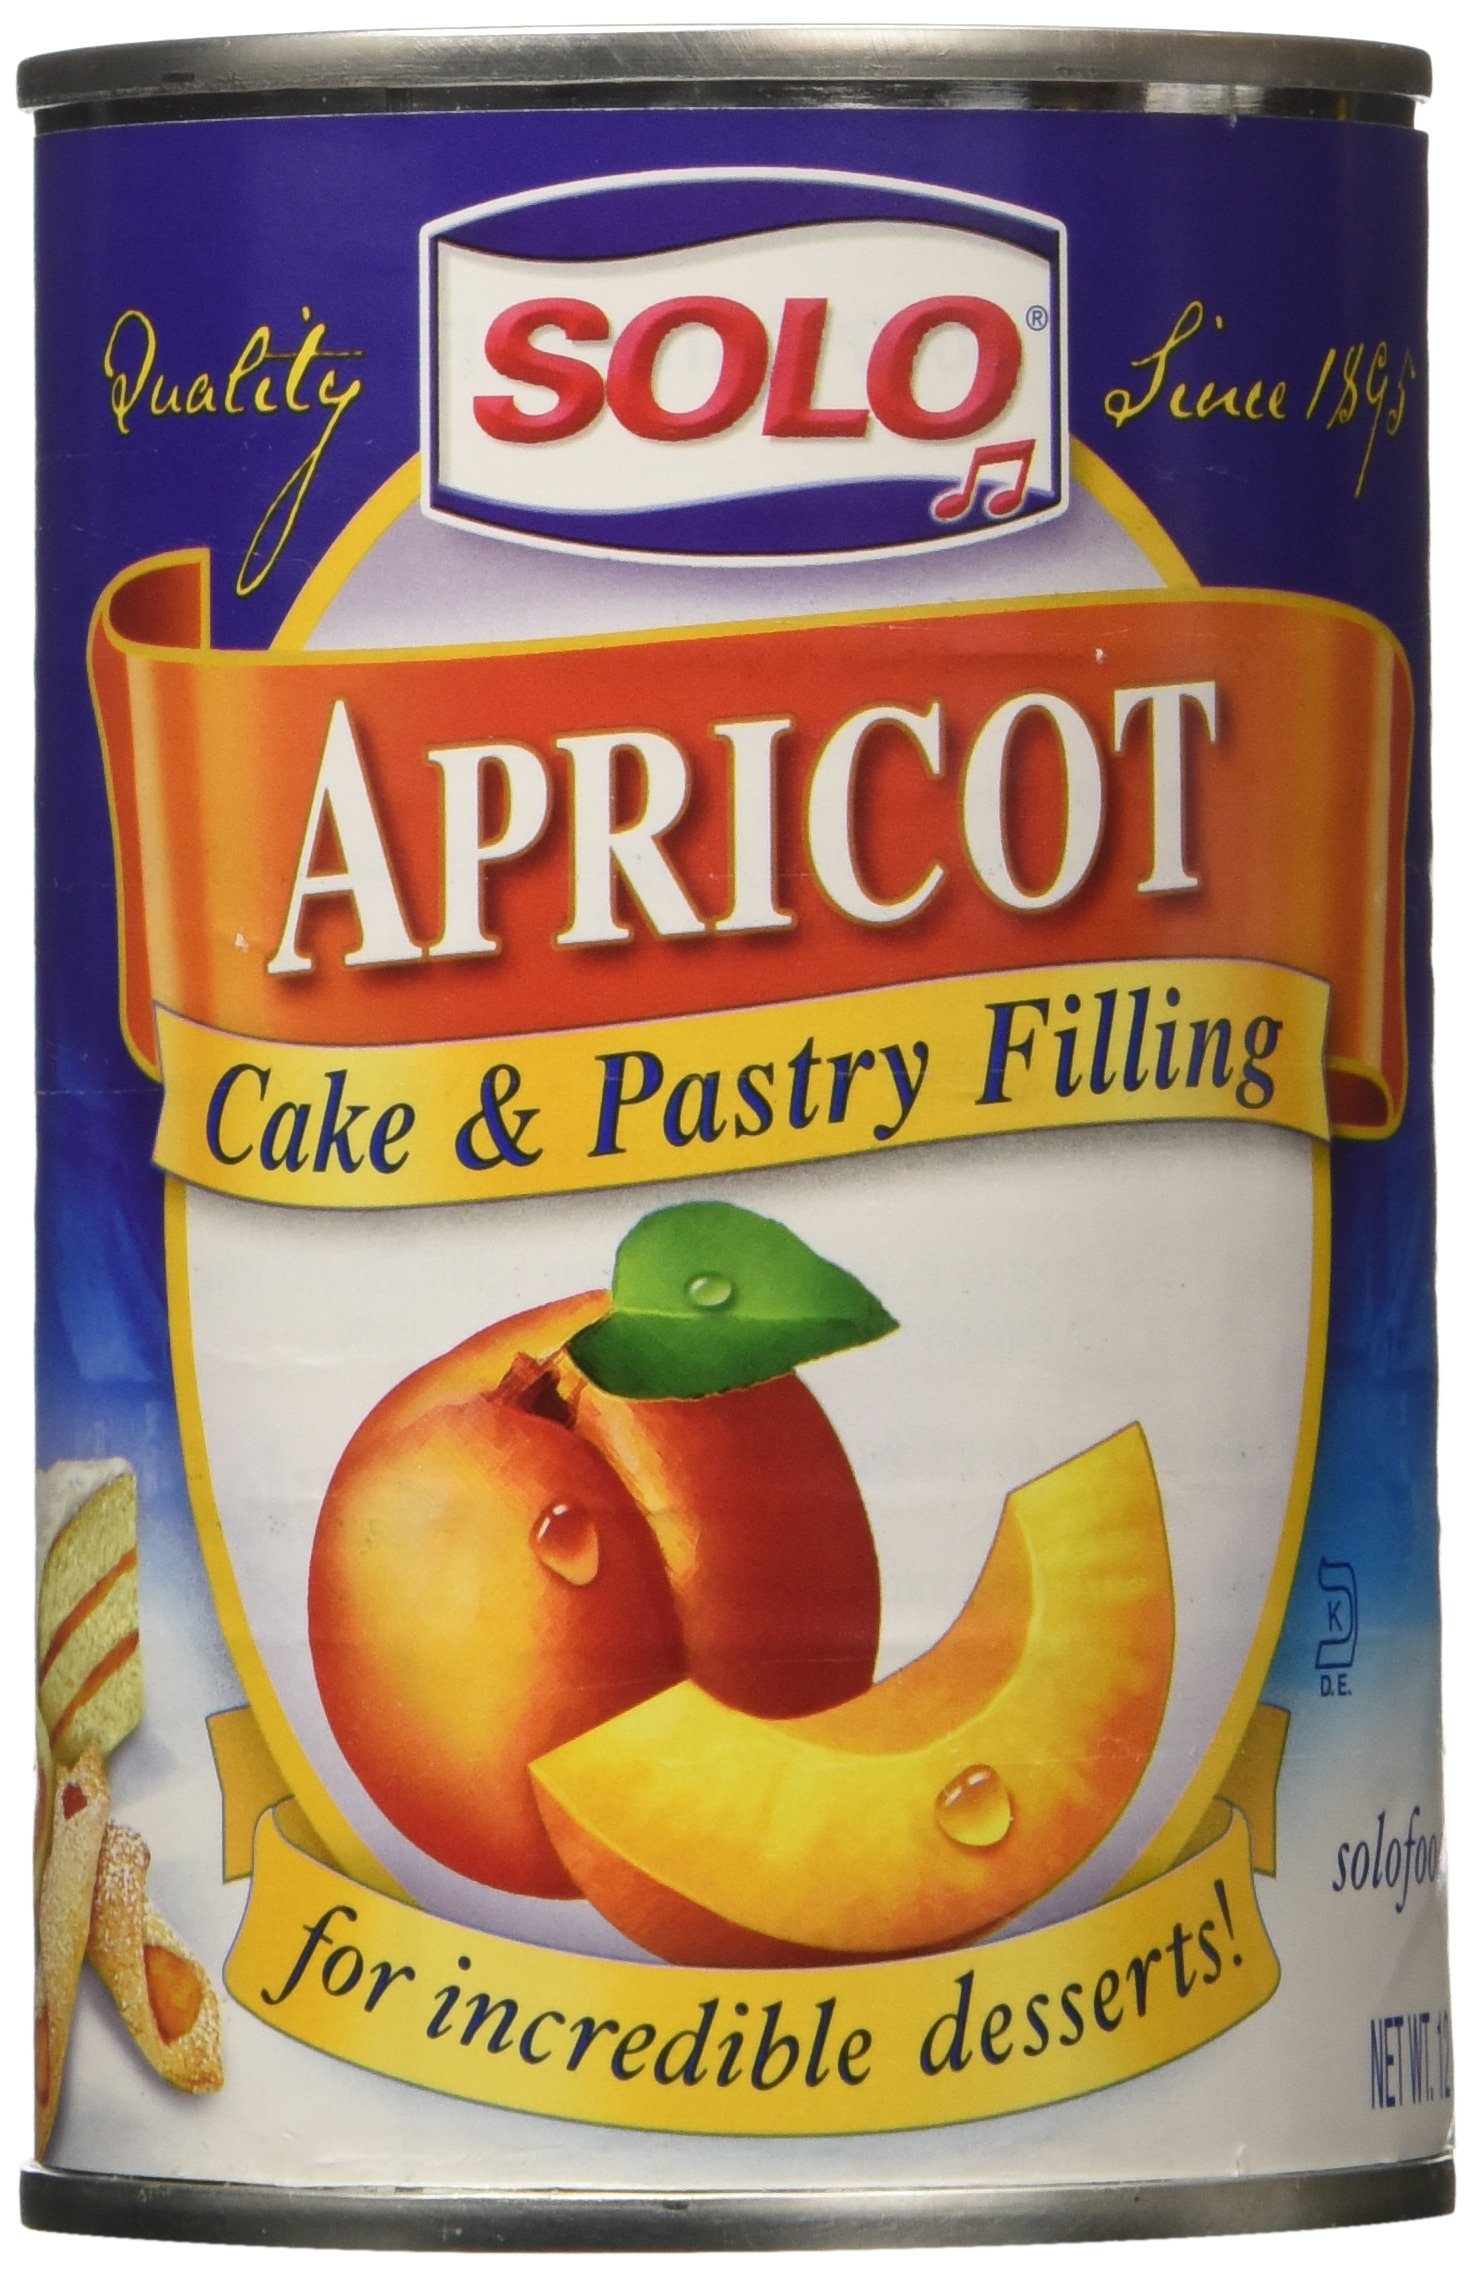 Solo Apricot Cake and Pastry Filling 12 Ounce - Pack of 2